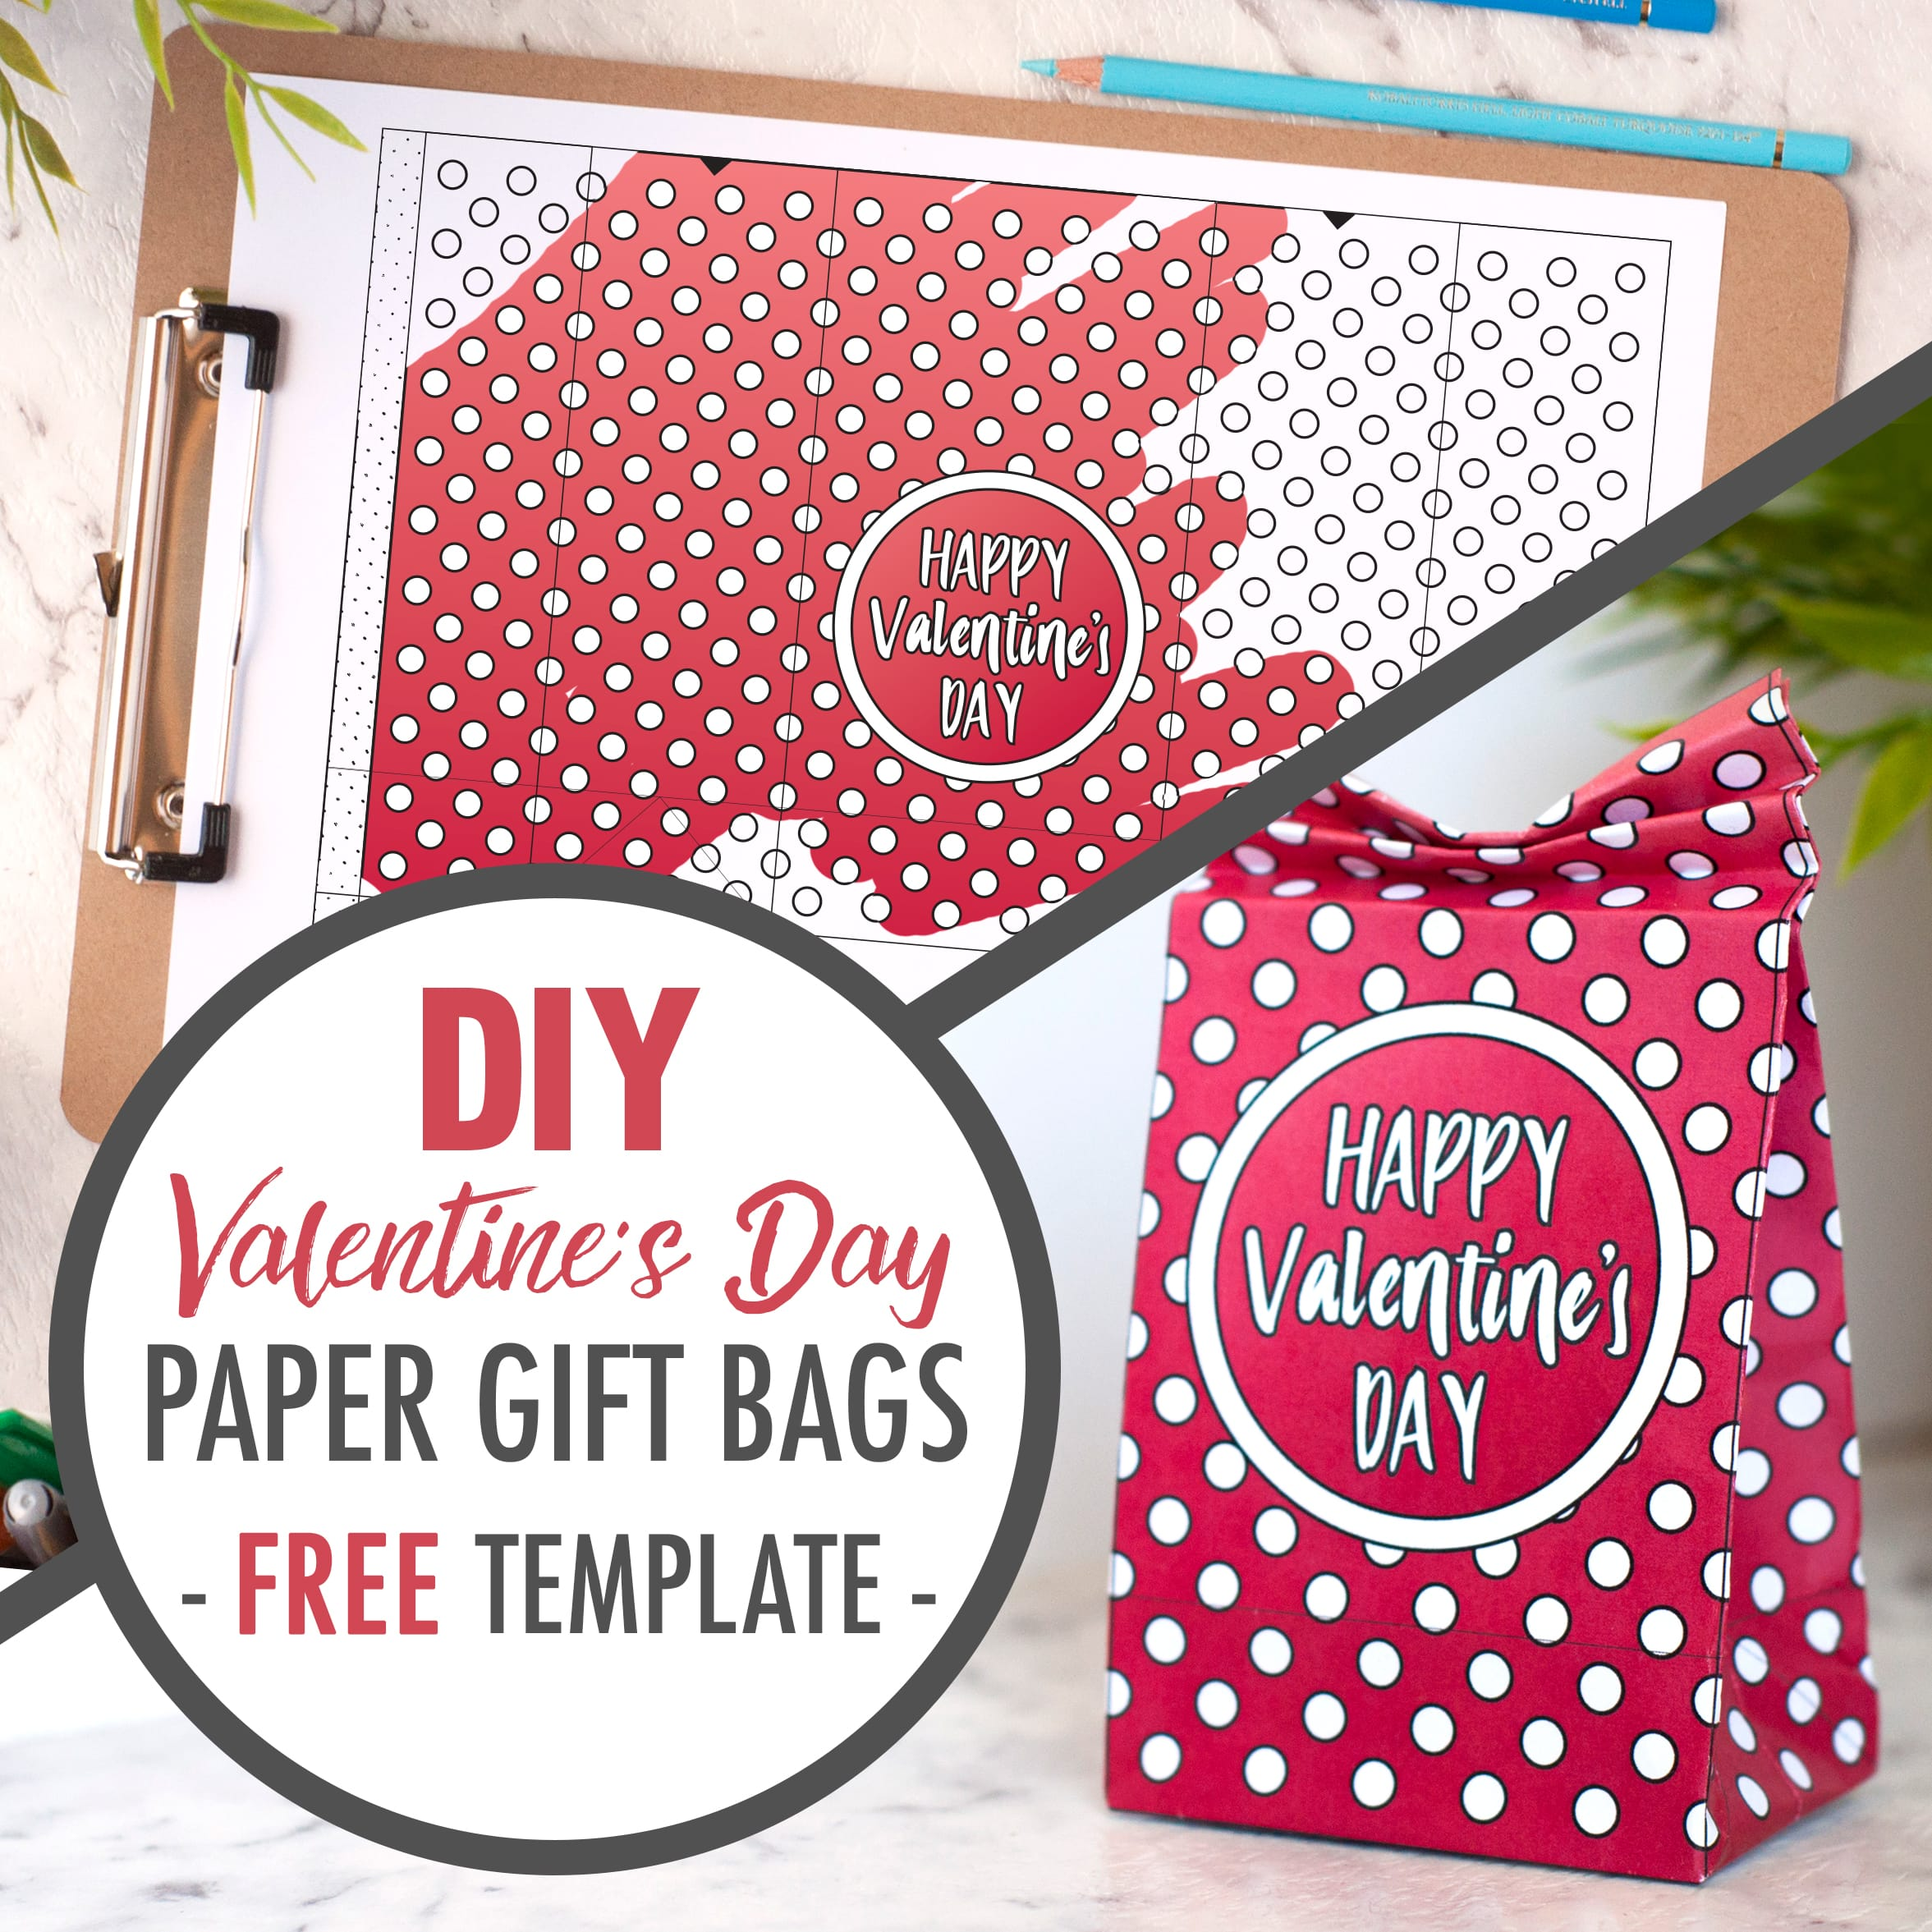 Coloring book bag - Diy Valentine S Day Paper Gift Bags Free Template And Tutorial Learn How To Make